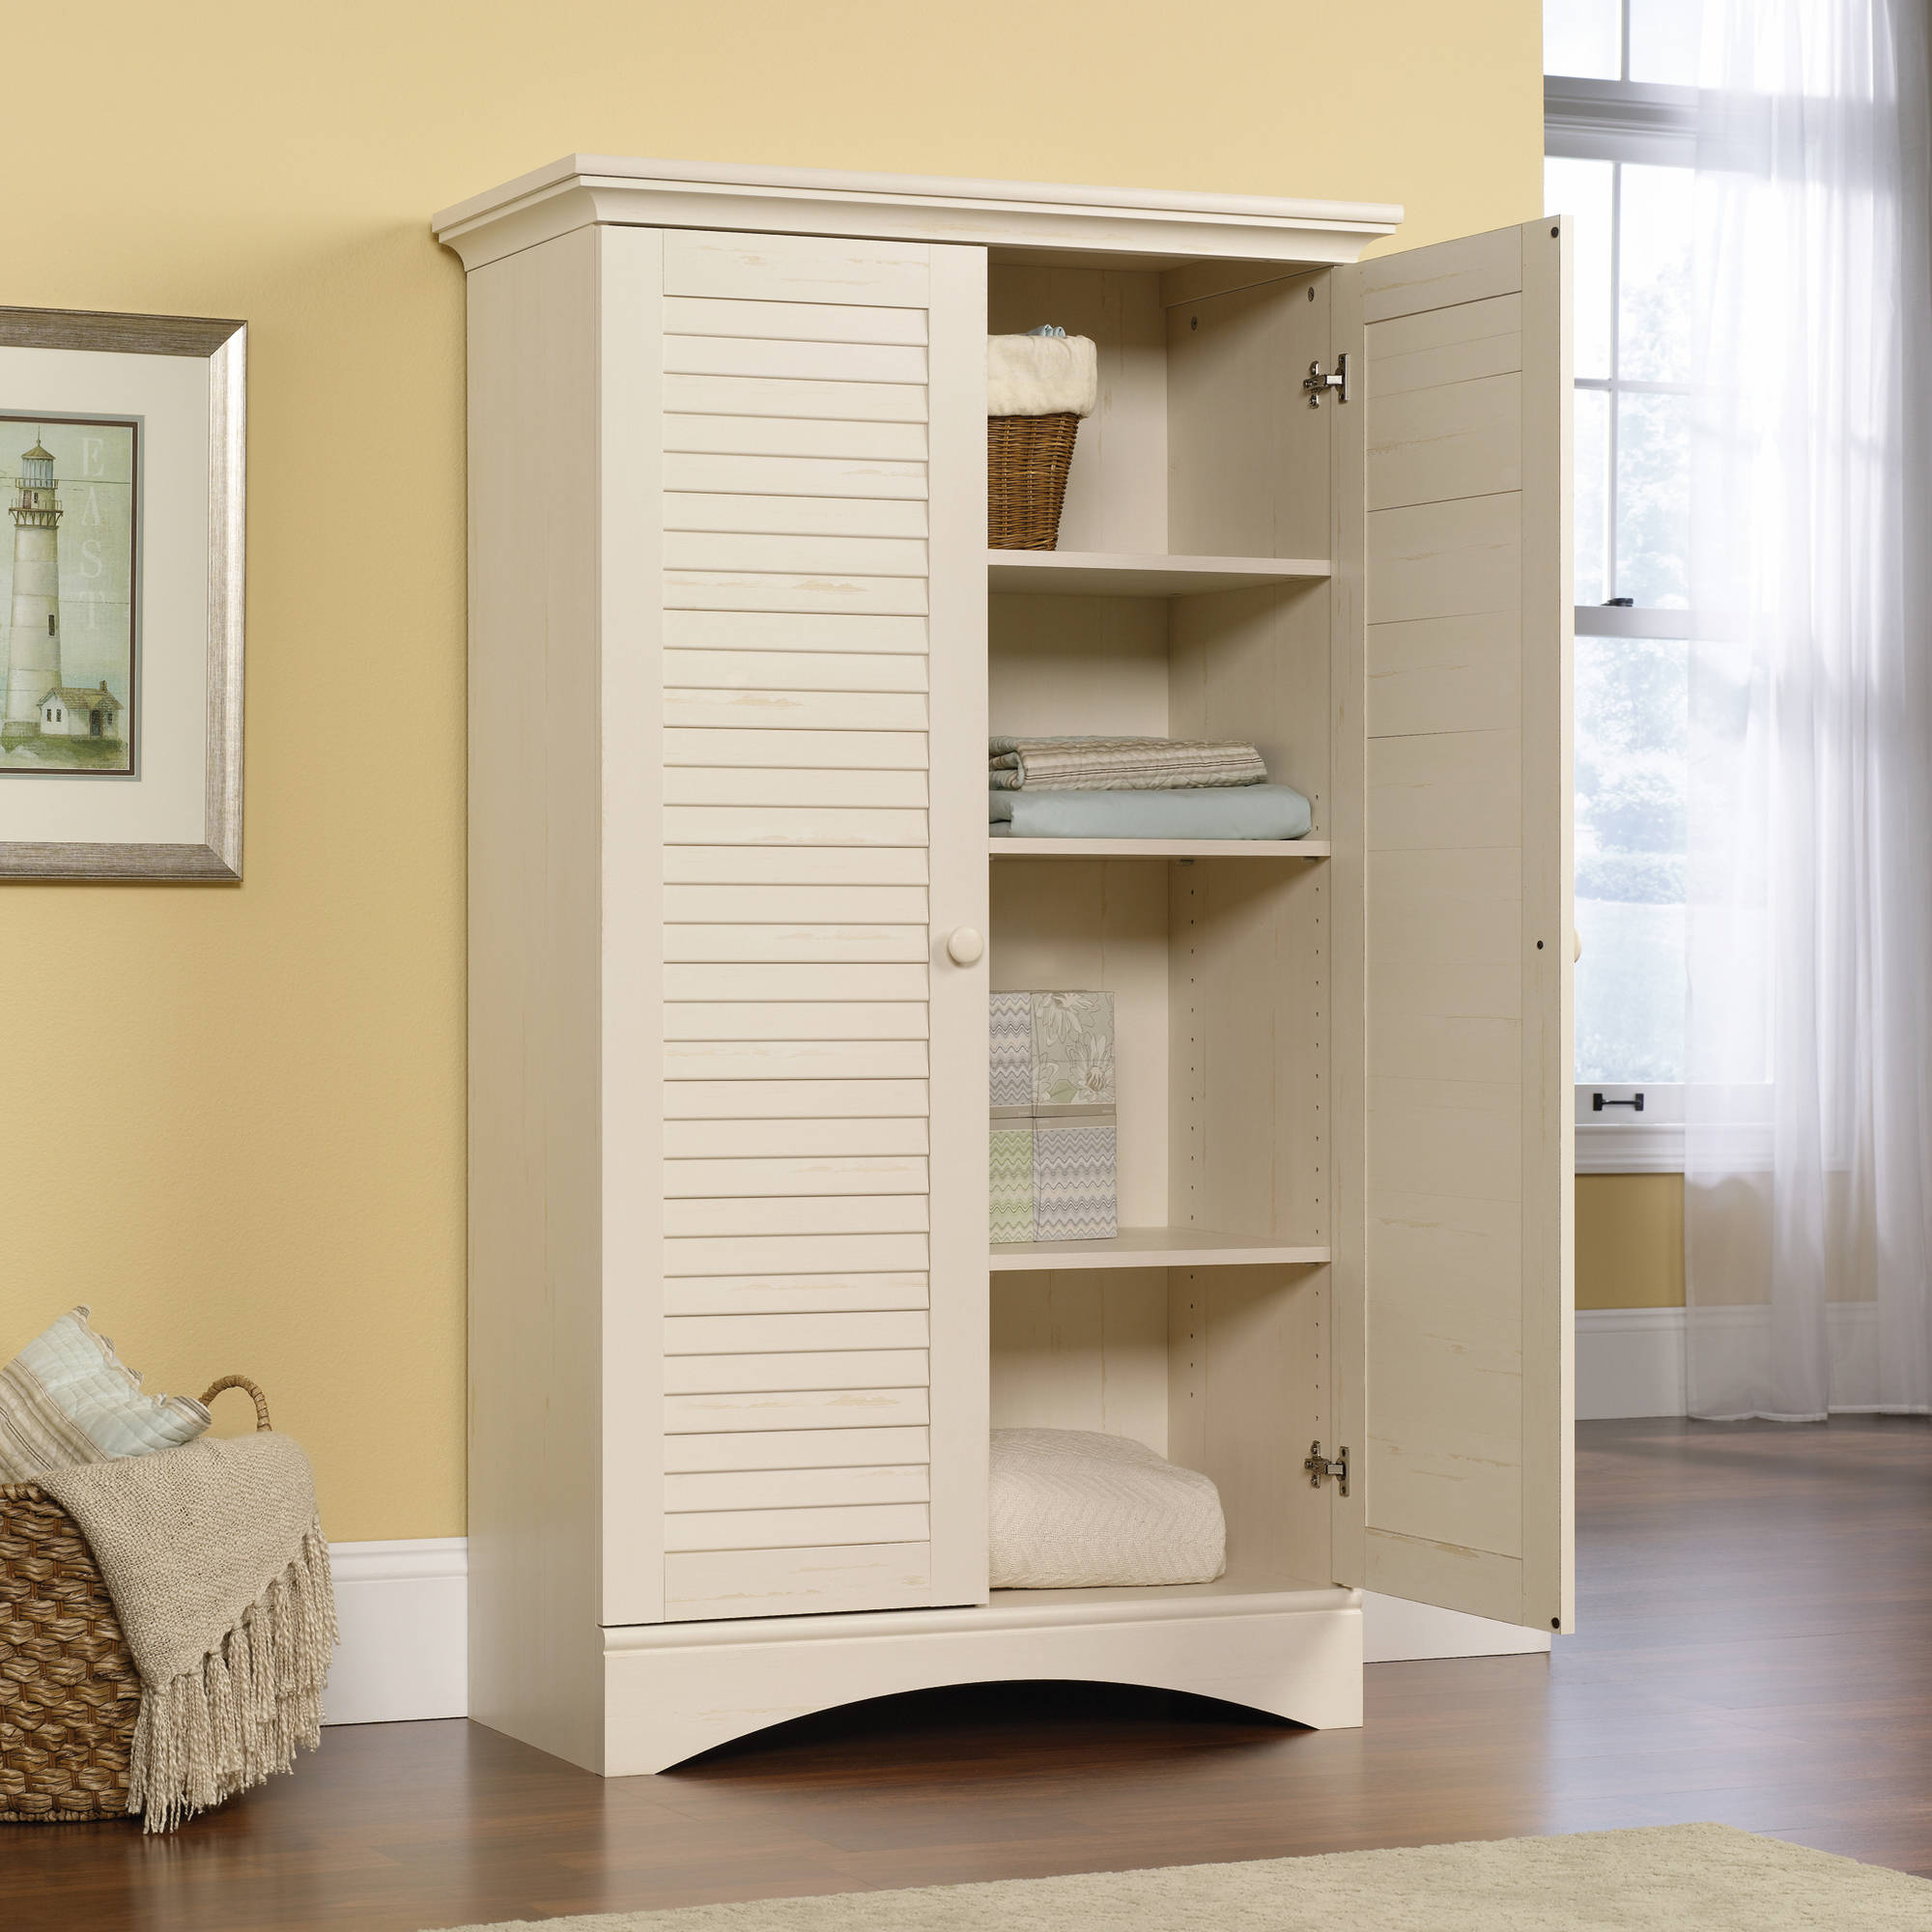 Details About Pantry Storage Cabinet Laundry Room Organizer Tall Kitchen  Utility Wood Shelves